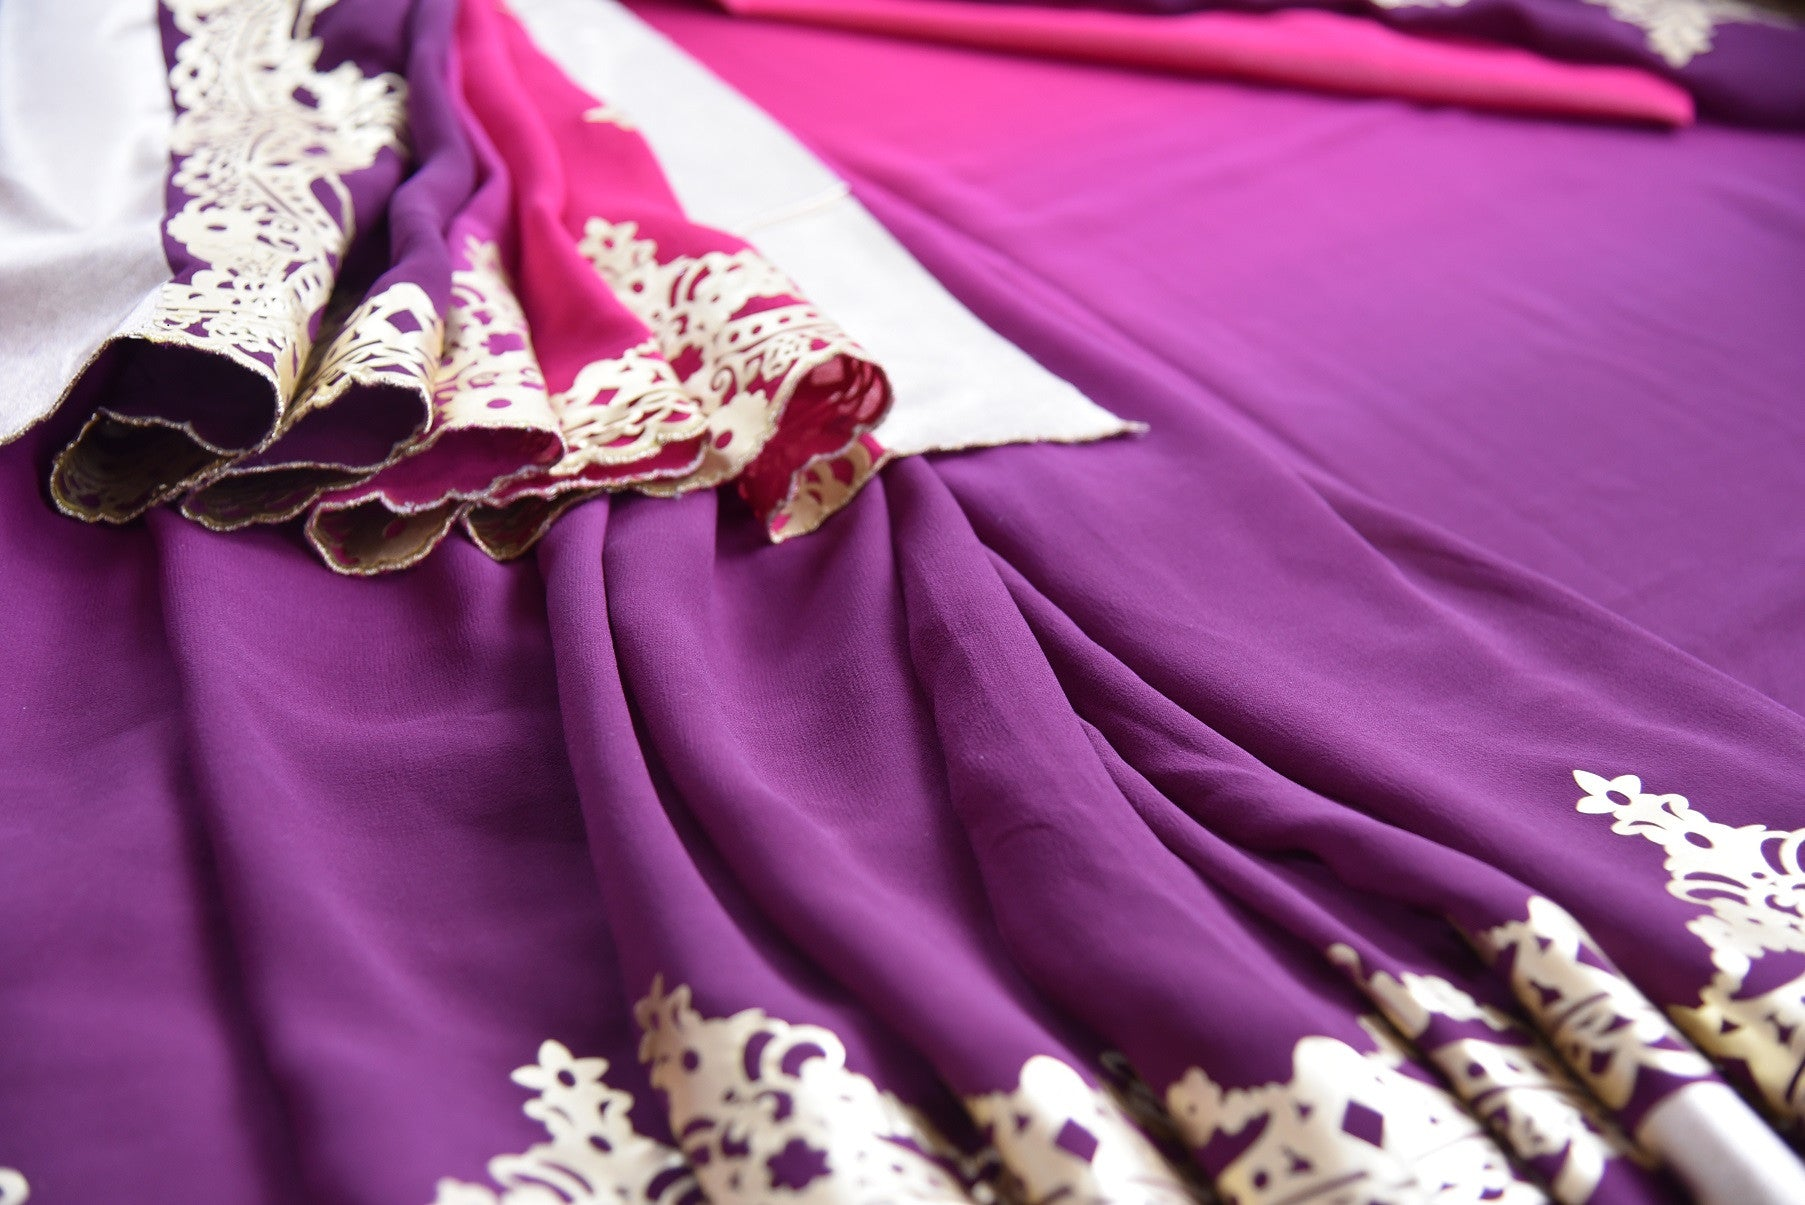 90c200 Shaded purple and wine red saree with exquisite leather work. The georgette party wear saree from India can be bought at our ethnic clothing store in USA. This one is a beautifully striking saree that is not to be missed!